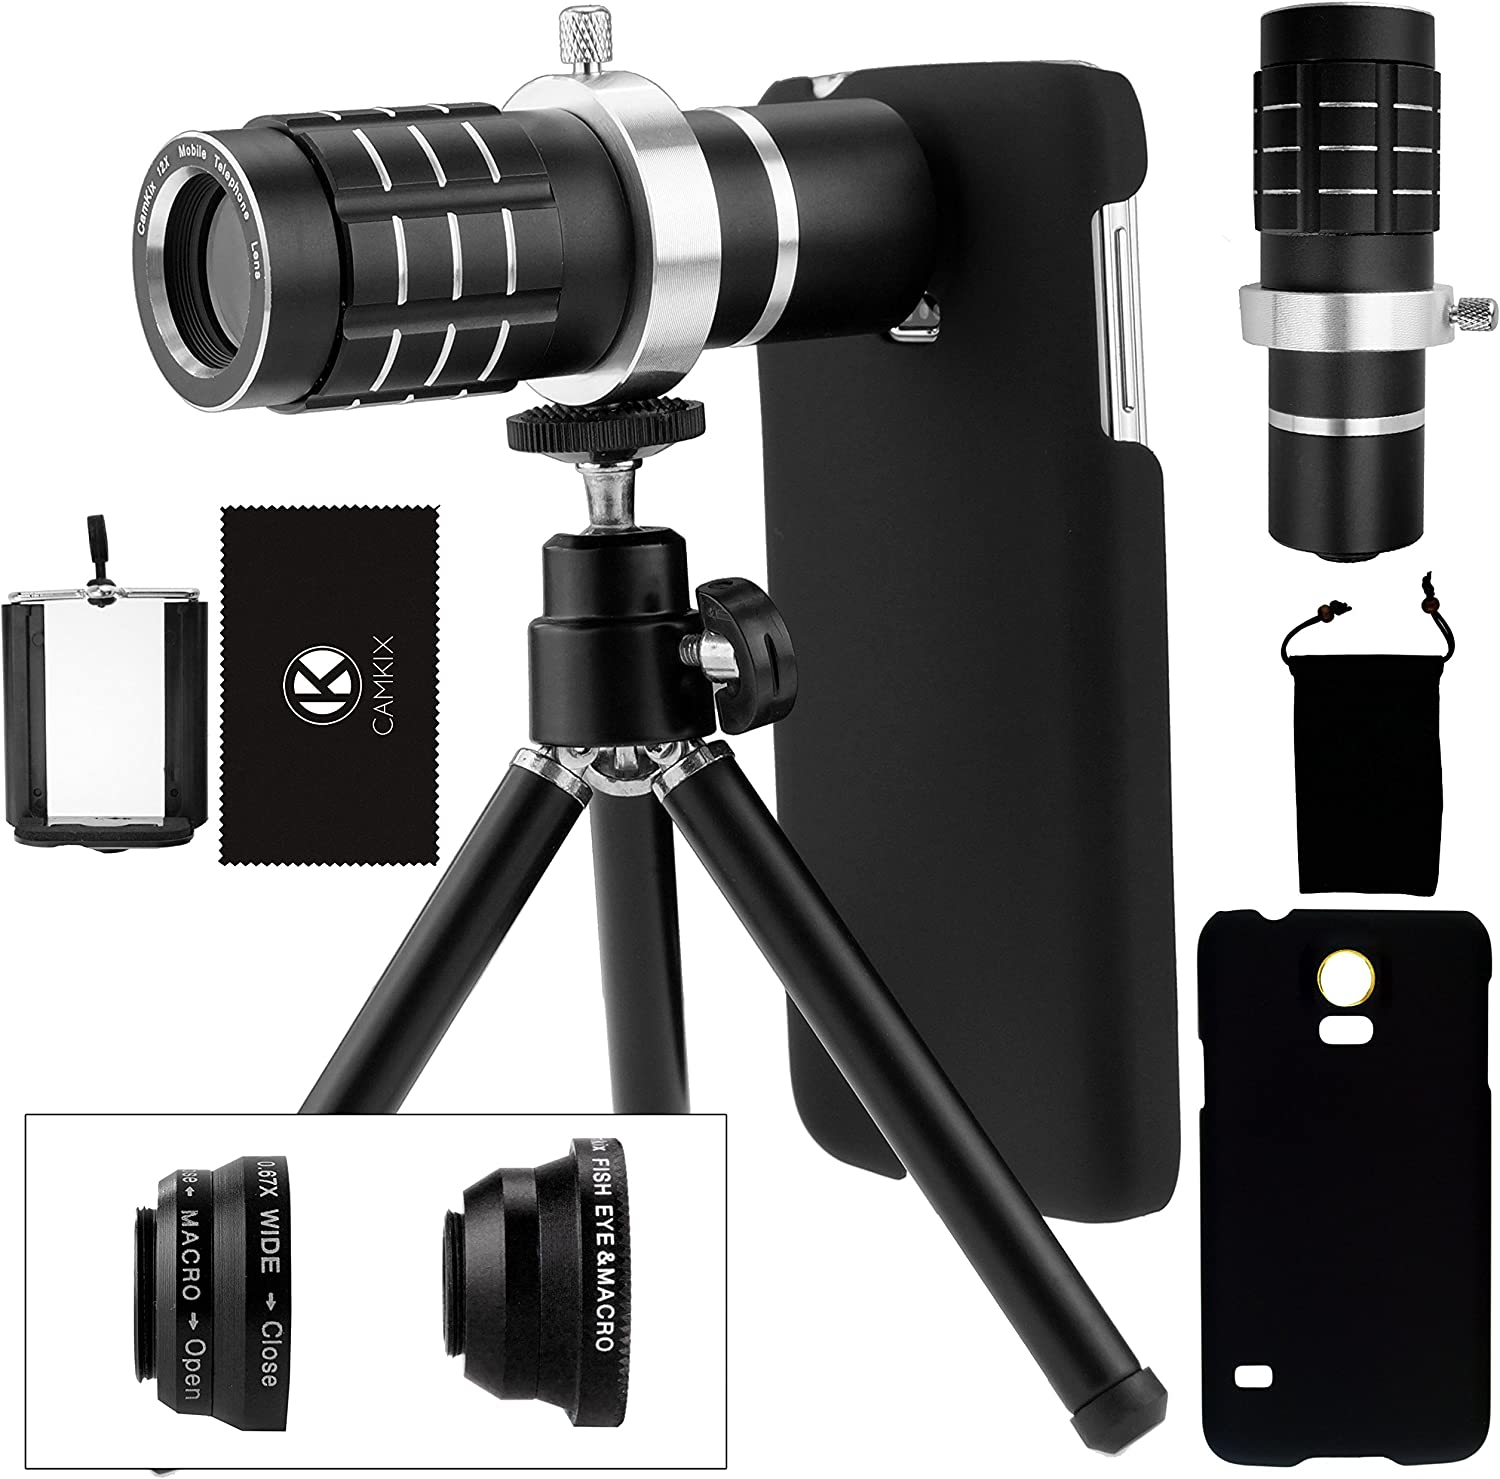 CamKix Camera Lens Kit Compatible with Samsung Galaxy S5 Including a 12x Telephoto Lens/Fisheye Lens / 2 in 1 Macro Lens/Wide Angle Lens/Tripod/Hard Case/Phone Bag